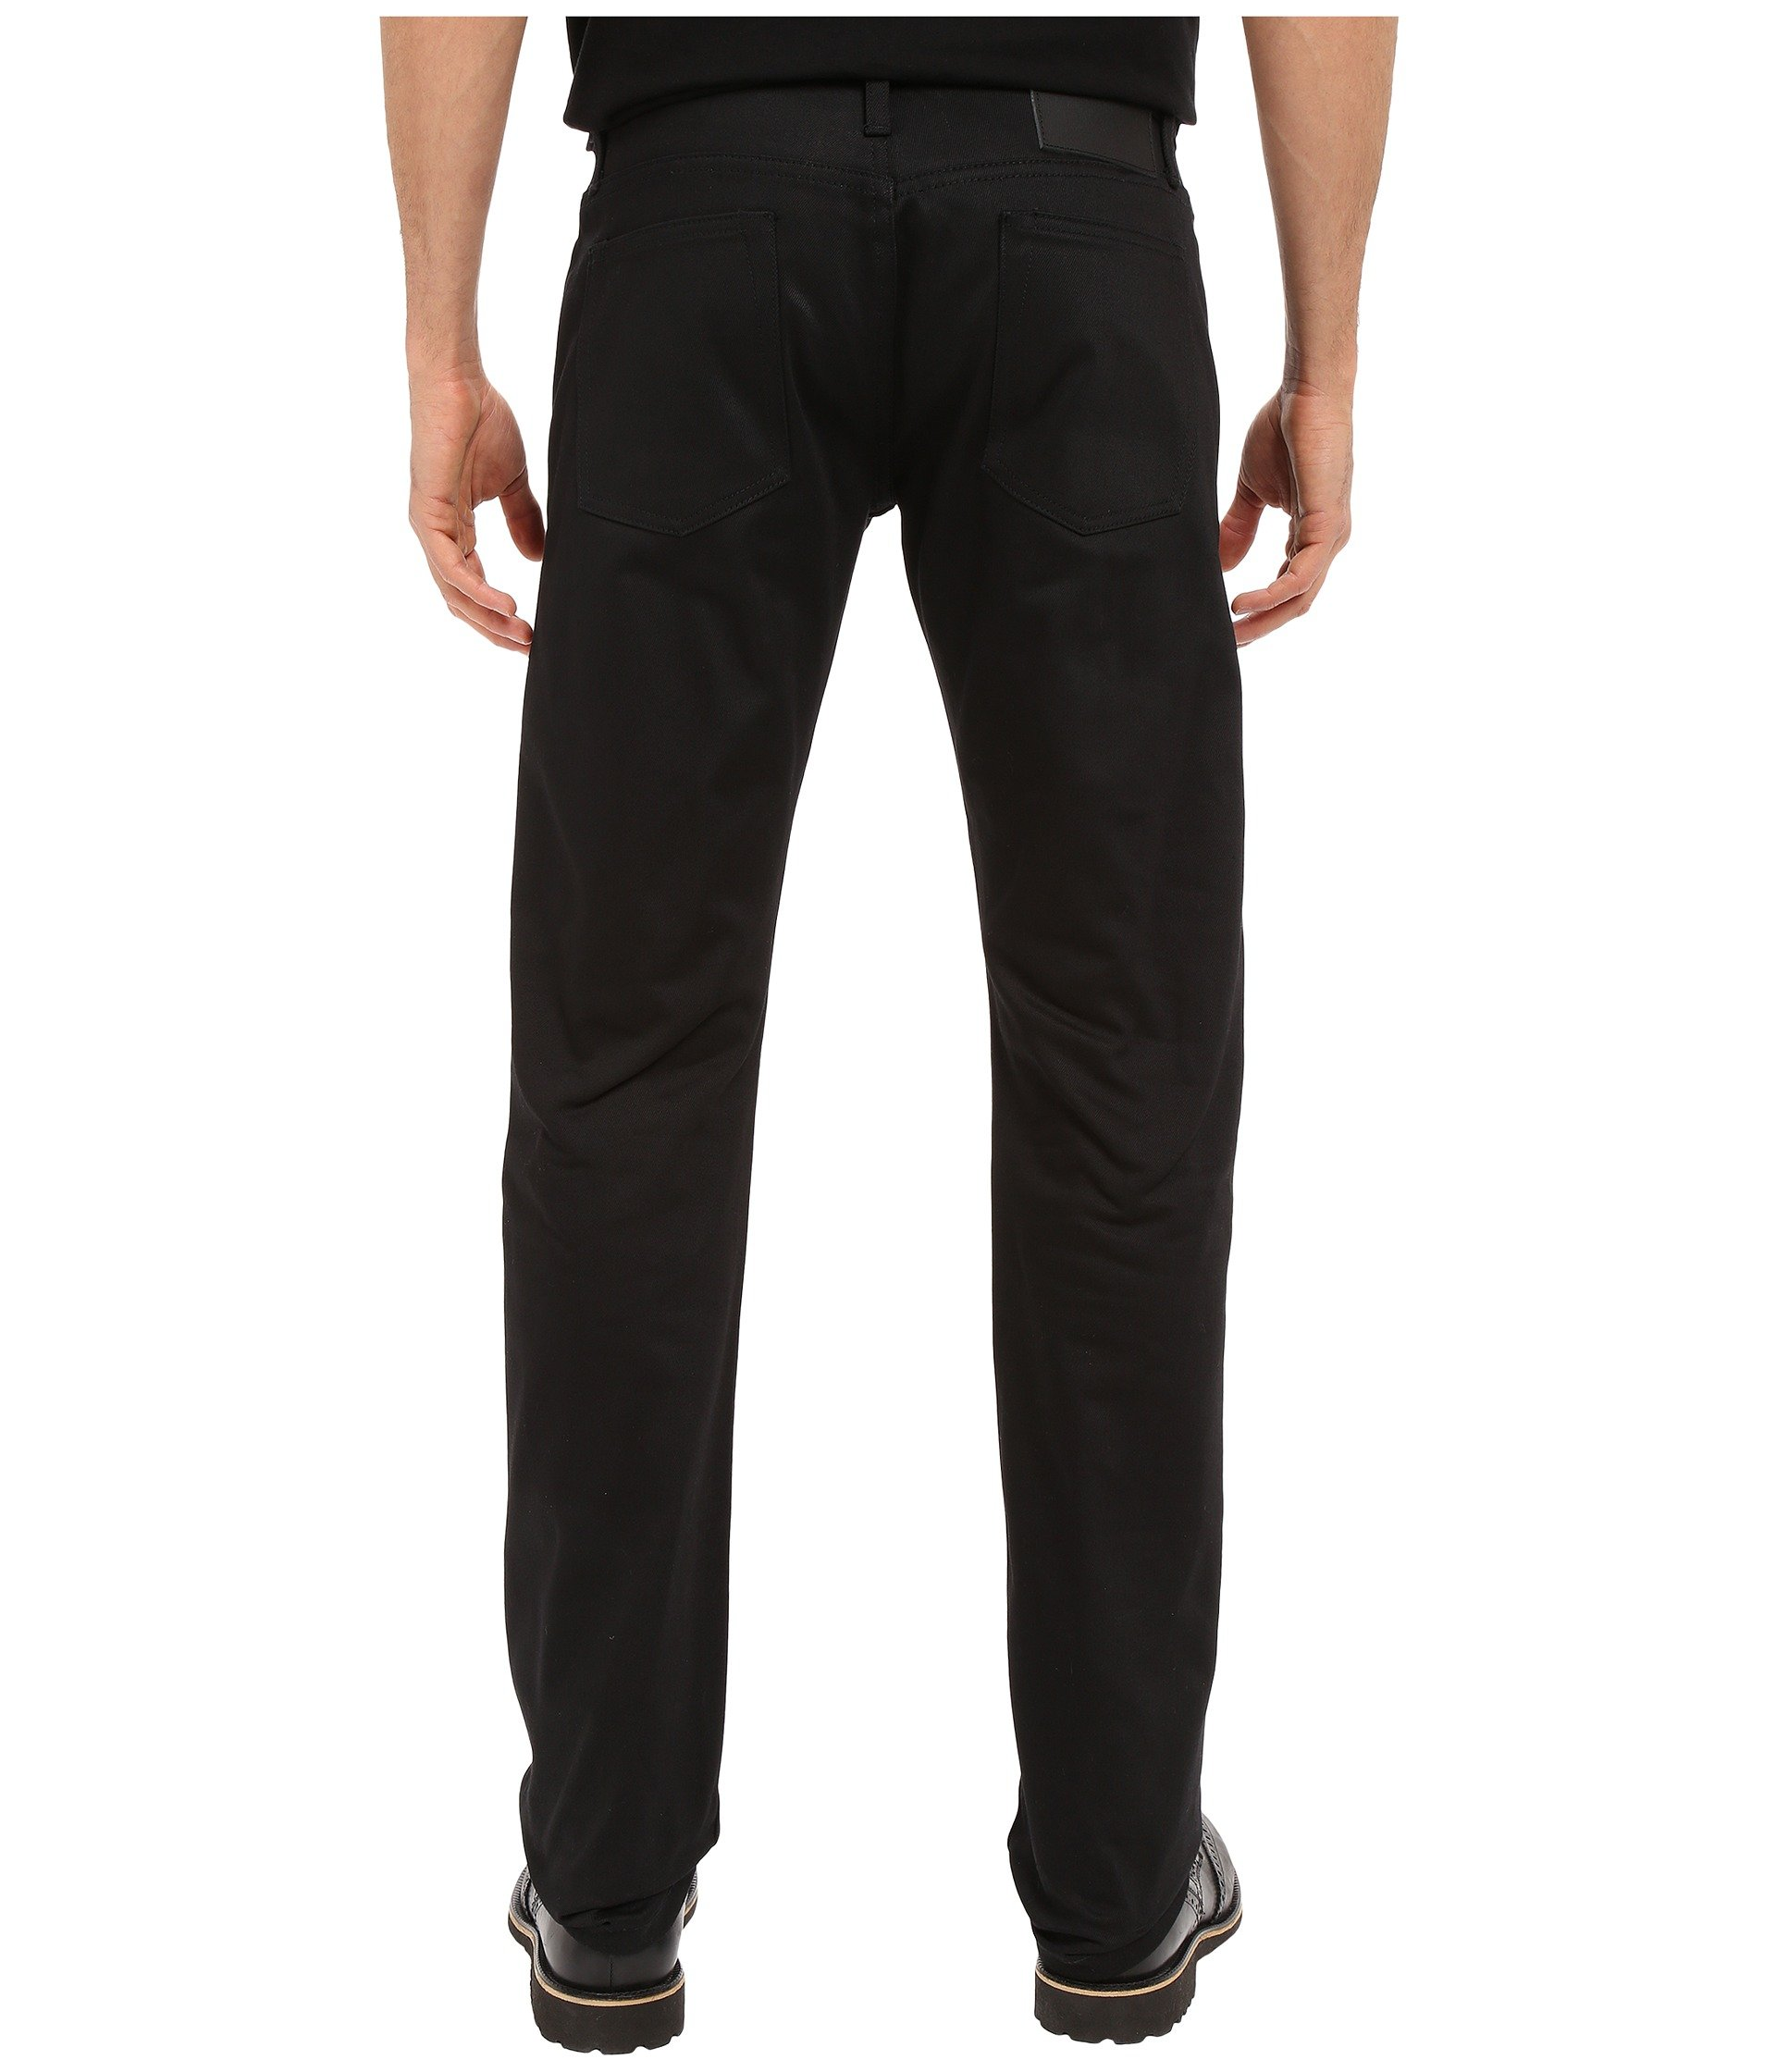 The Unbranded Selvedge Tapered In Brand Black Chino wwdqSvr7n